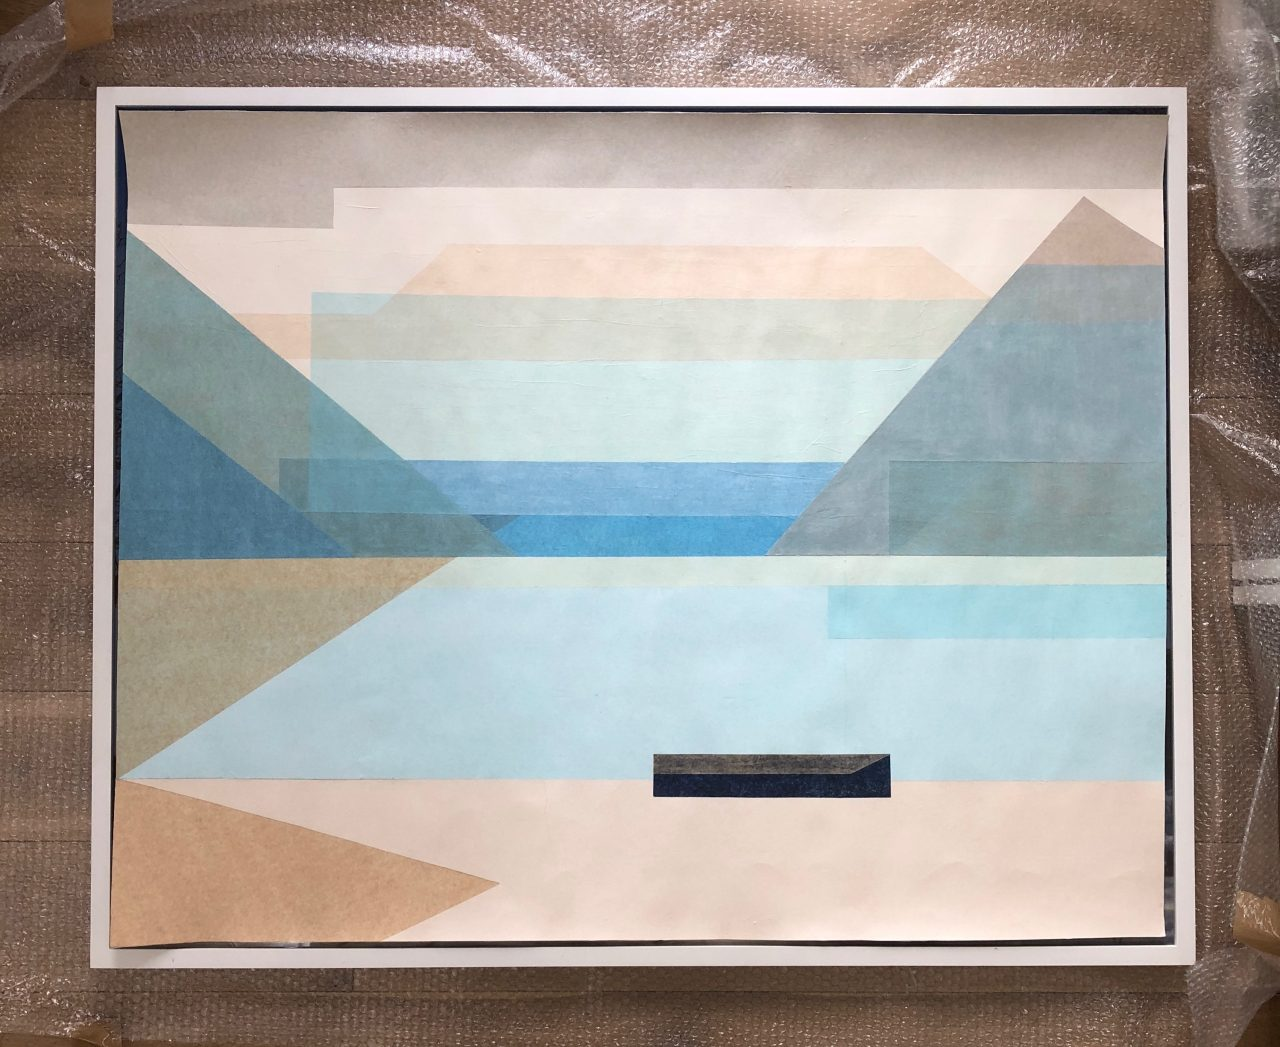 The Bay of Uri 88x110cm paper on paper 2018